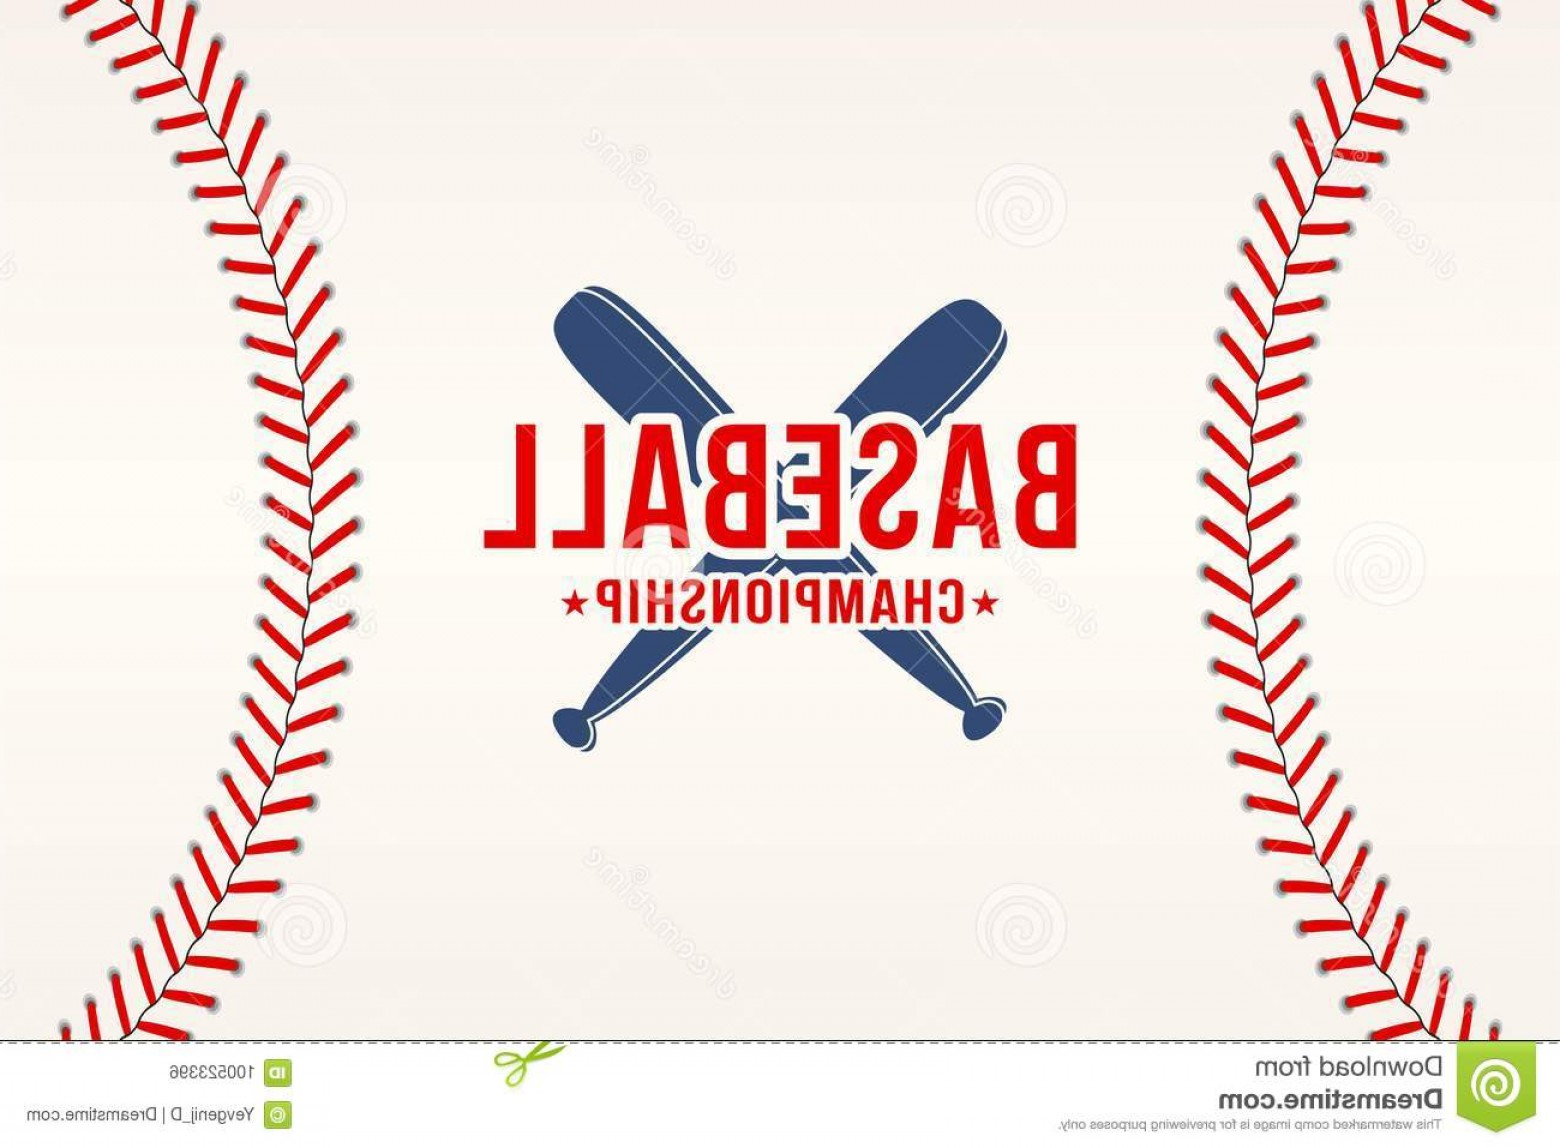 Vector Football Laces And Lines: Baseball Background Ball Laces Stitches Texture Bats Sport Club Logo Poster Design Vector Image